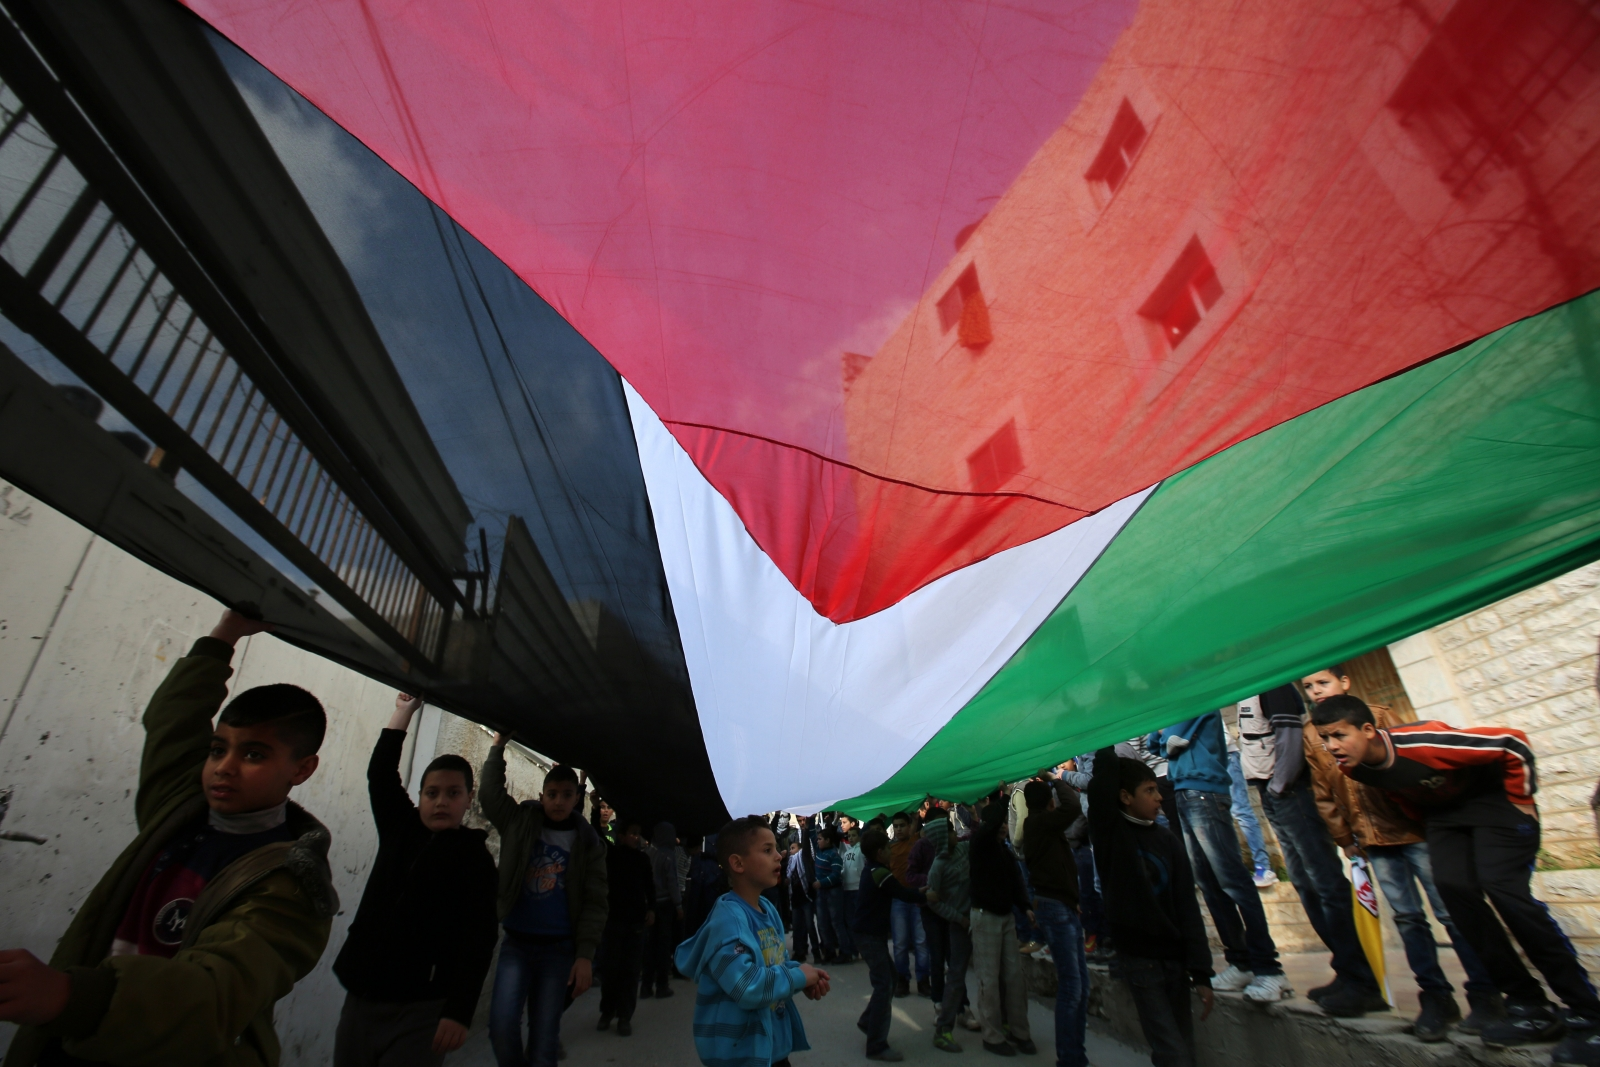 Palestinian children deploy a giant national flag during a march of members of the al-Aqsa Martyrs Brigades, the Palestinian Fatah movement's armed wing, to mark the 50th anniversary of the launching of Fatah's armed struggle against Israel